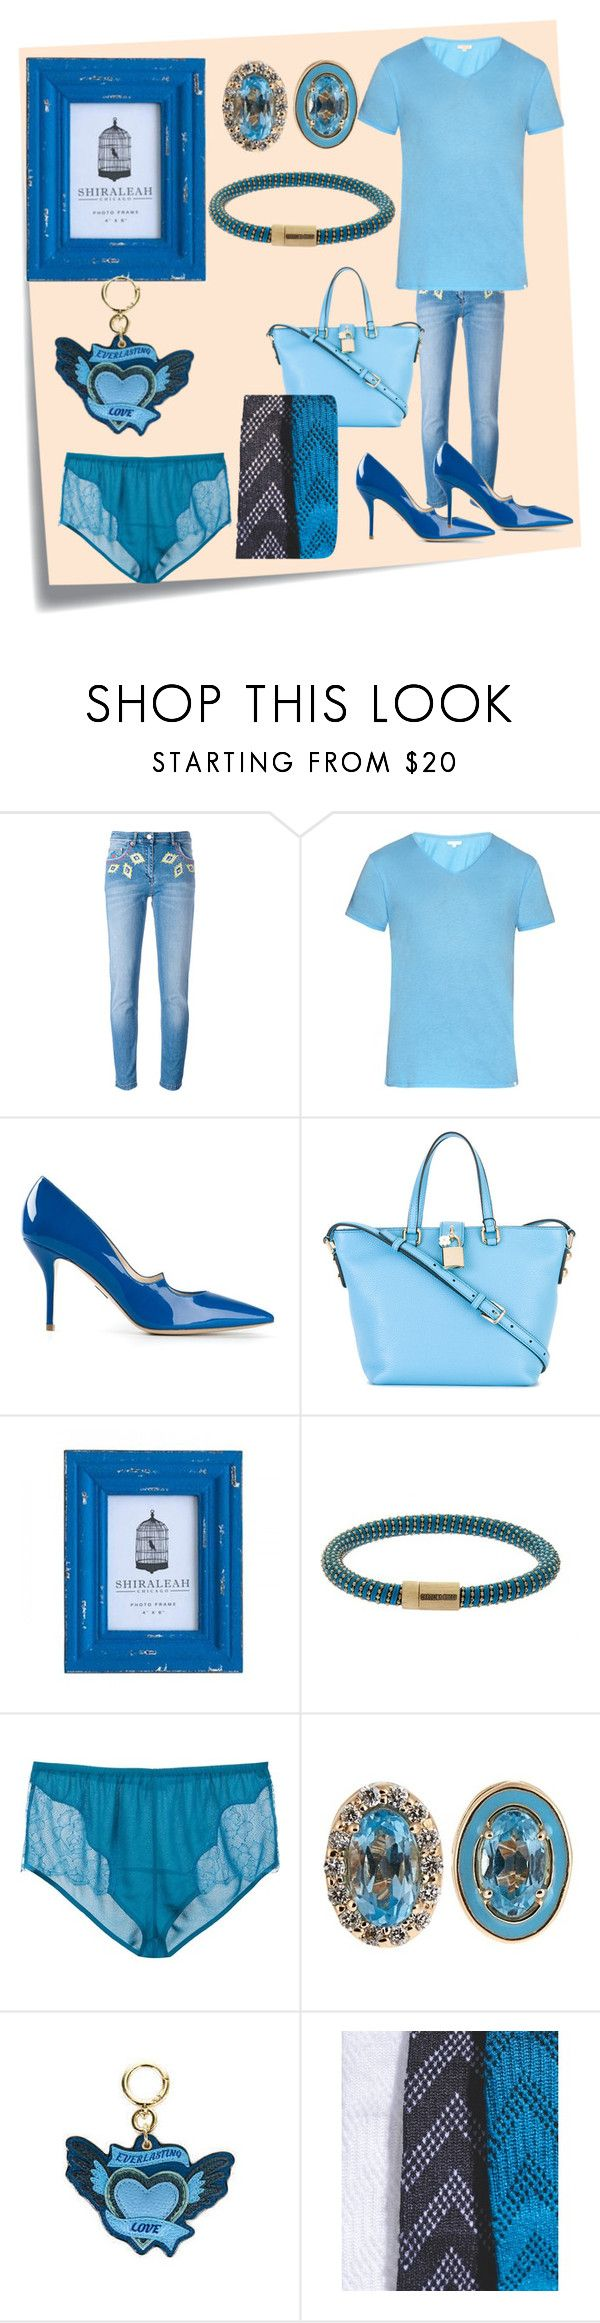 """beautiful and feminine"" by denisee-denisee ❤ liked on Polyvore featuring Post-It, Moschino, Orlebar Brown, Paul Andrew, Dolce&Gabbana, Carolina Bucci, Fleur du Mal, Alison Lou, Burberry and lululemon"